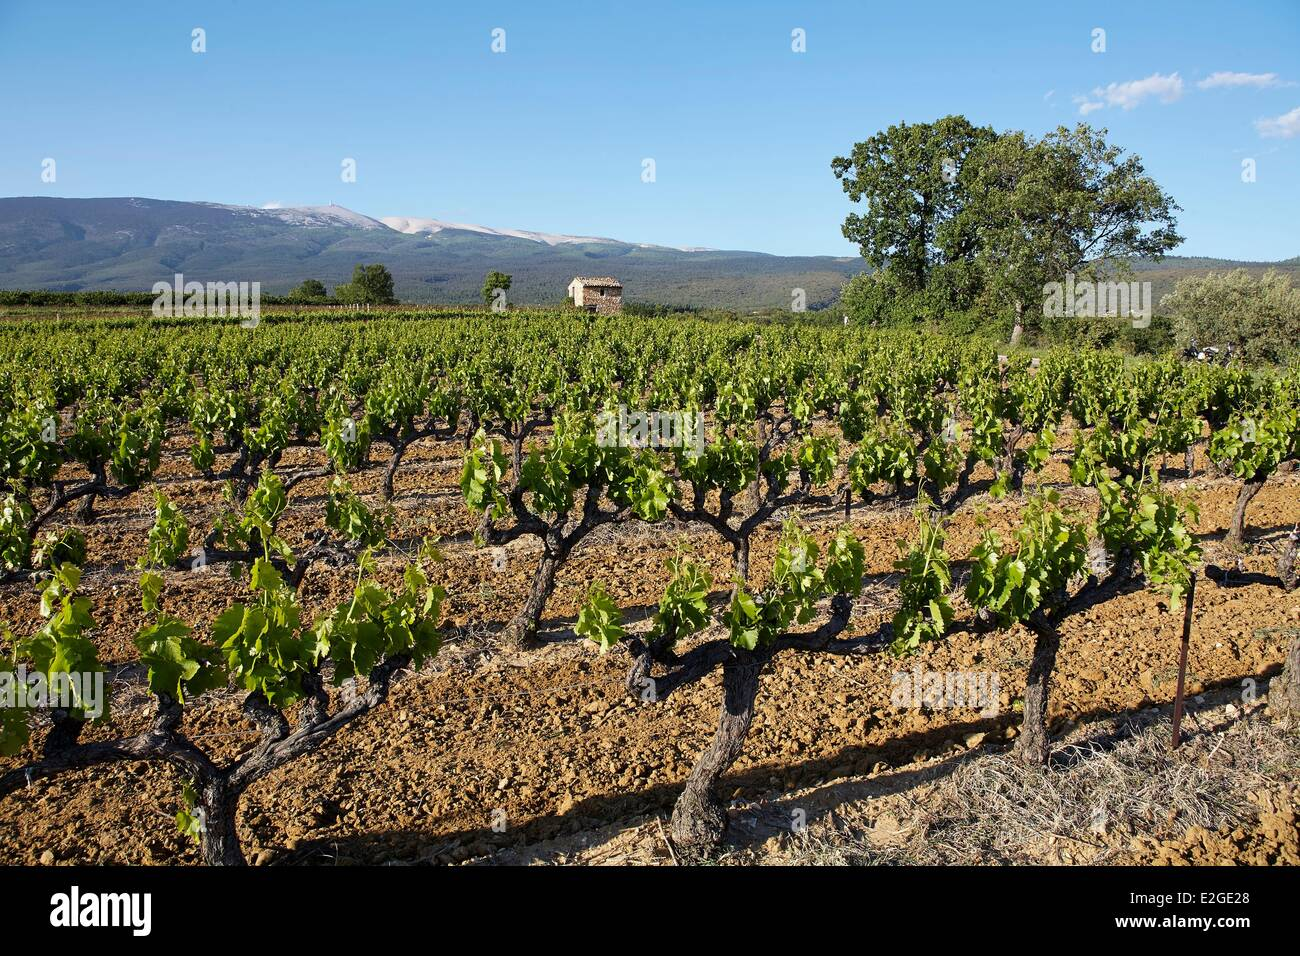 France Vaucluse Flassan Gaps Vineyard and Mont Ventoux in background - Stock Image